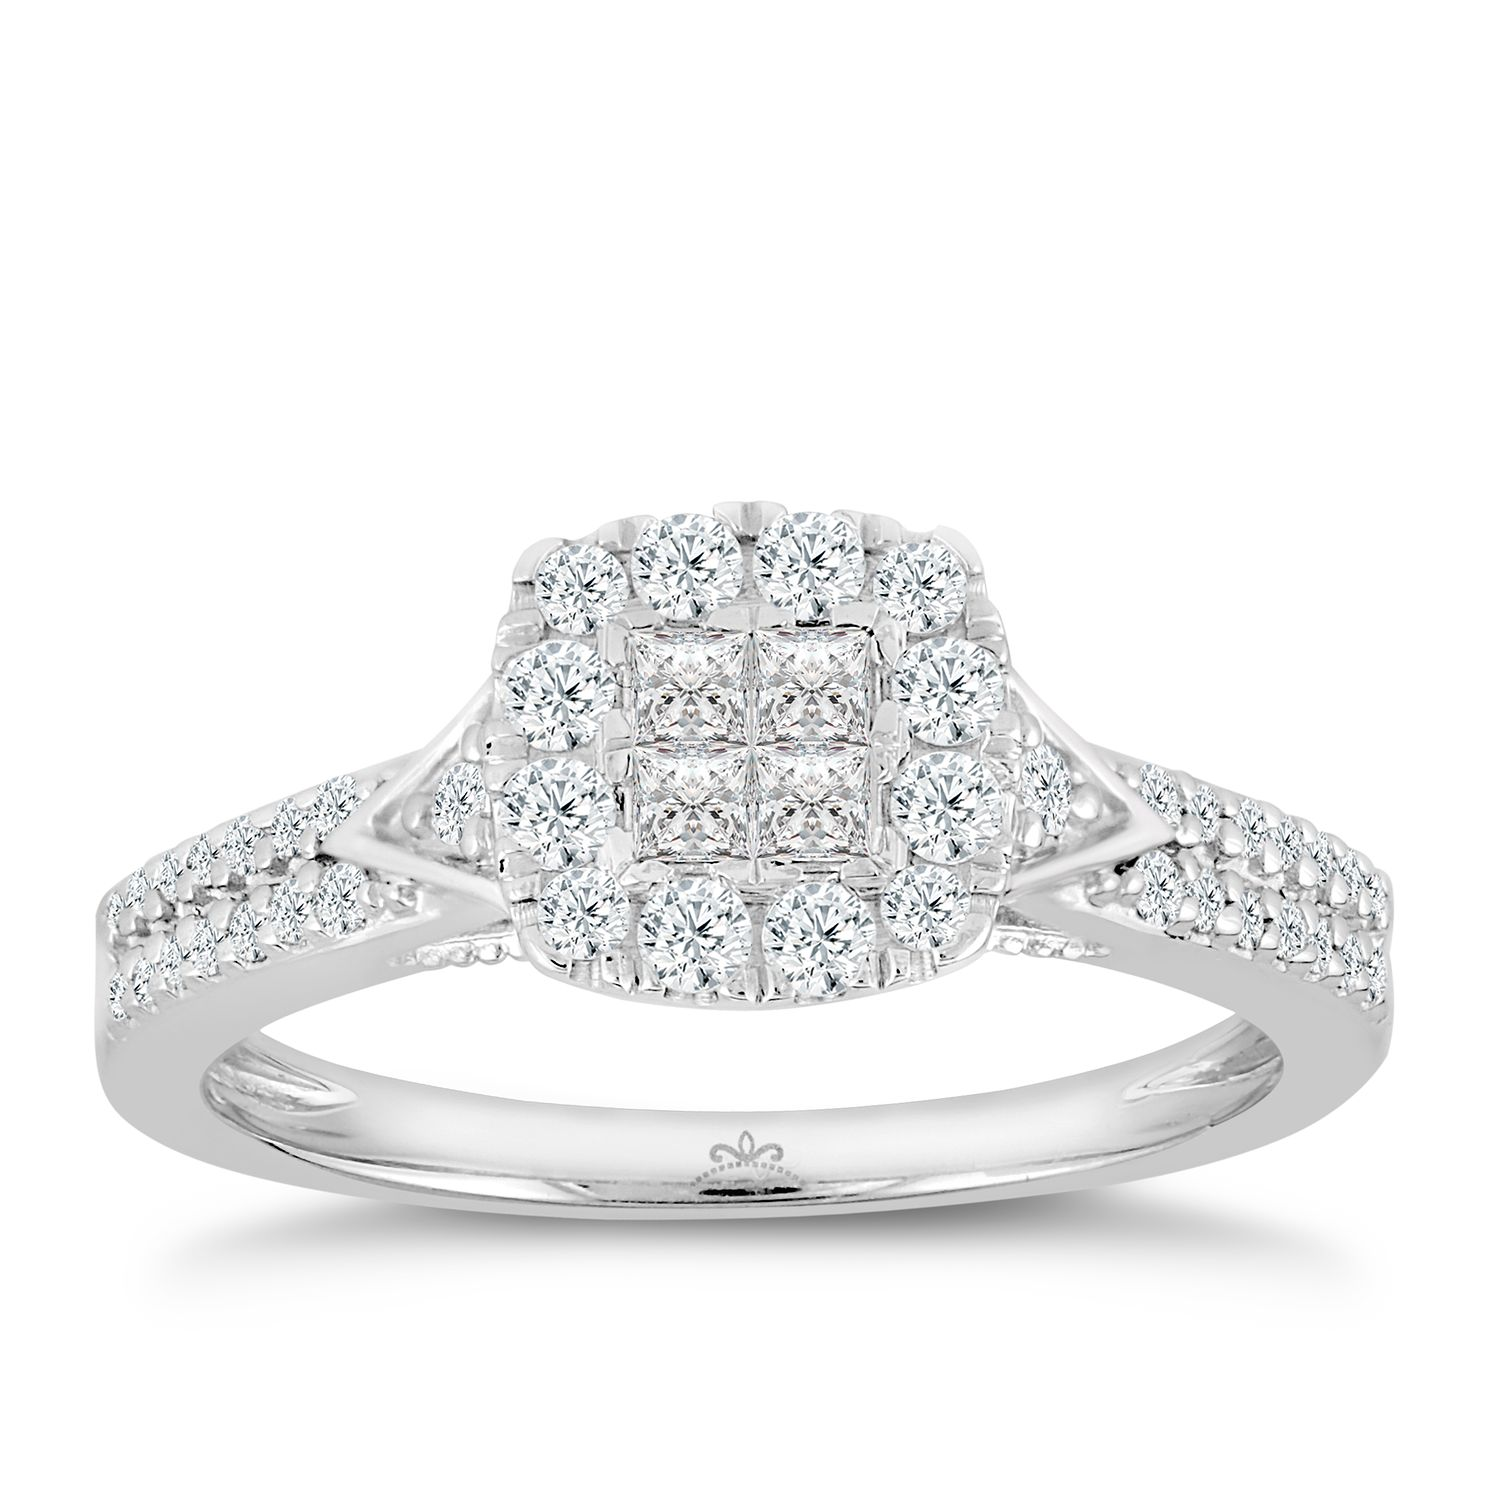 Princessa 9ct White Gold 0.50ct Diamond Ring - Product number 3002535